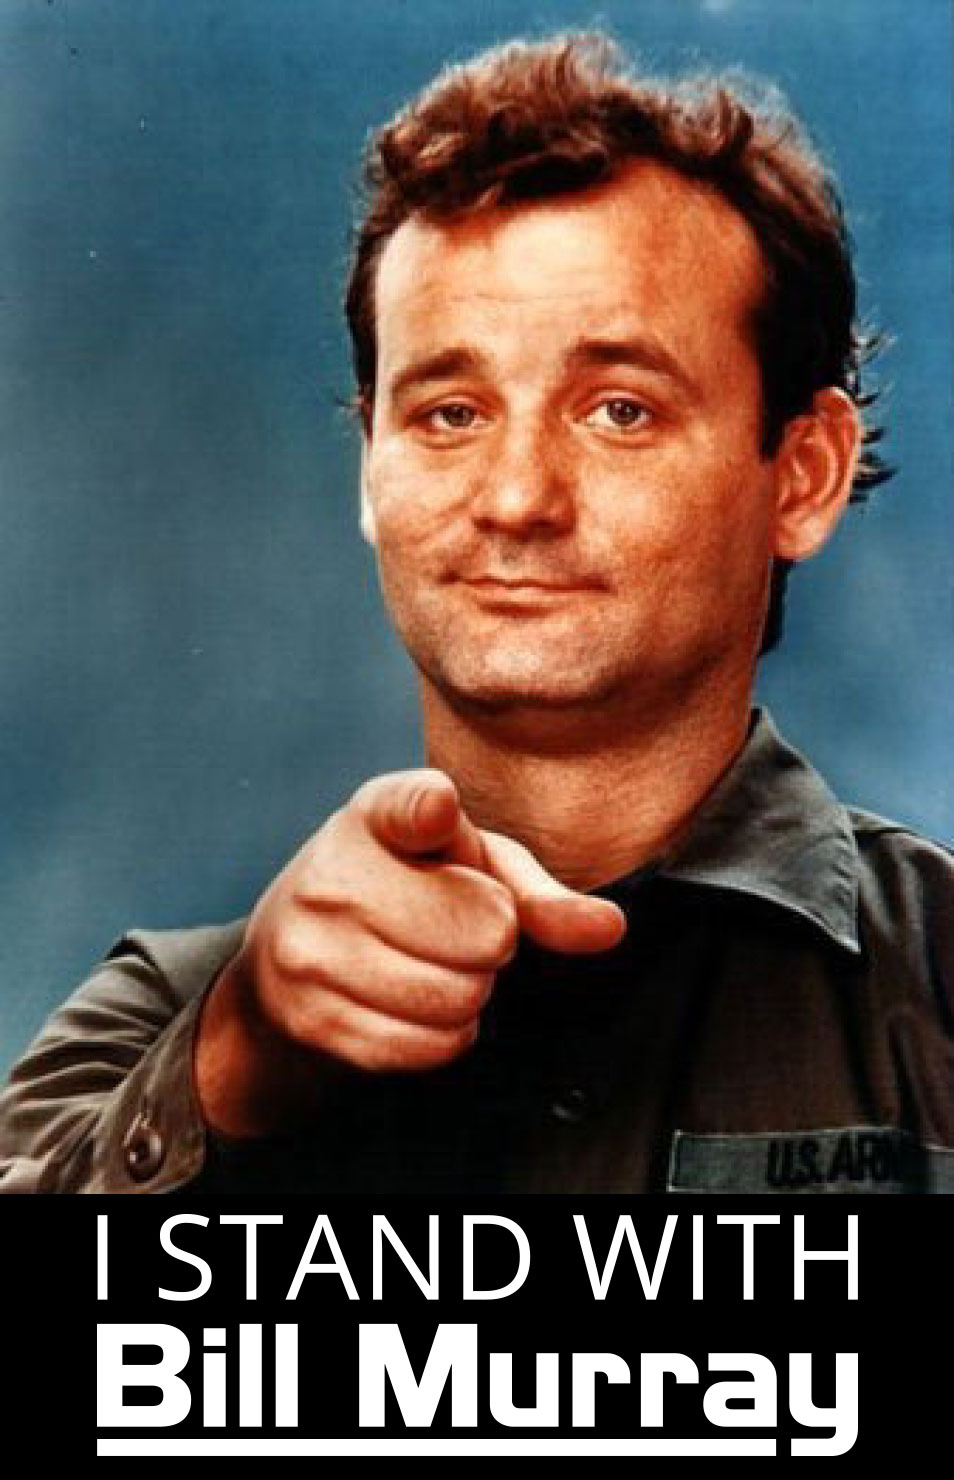 Vote for Bill Murray